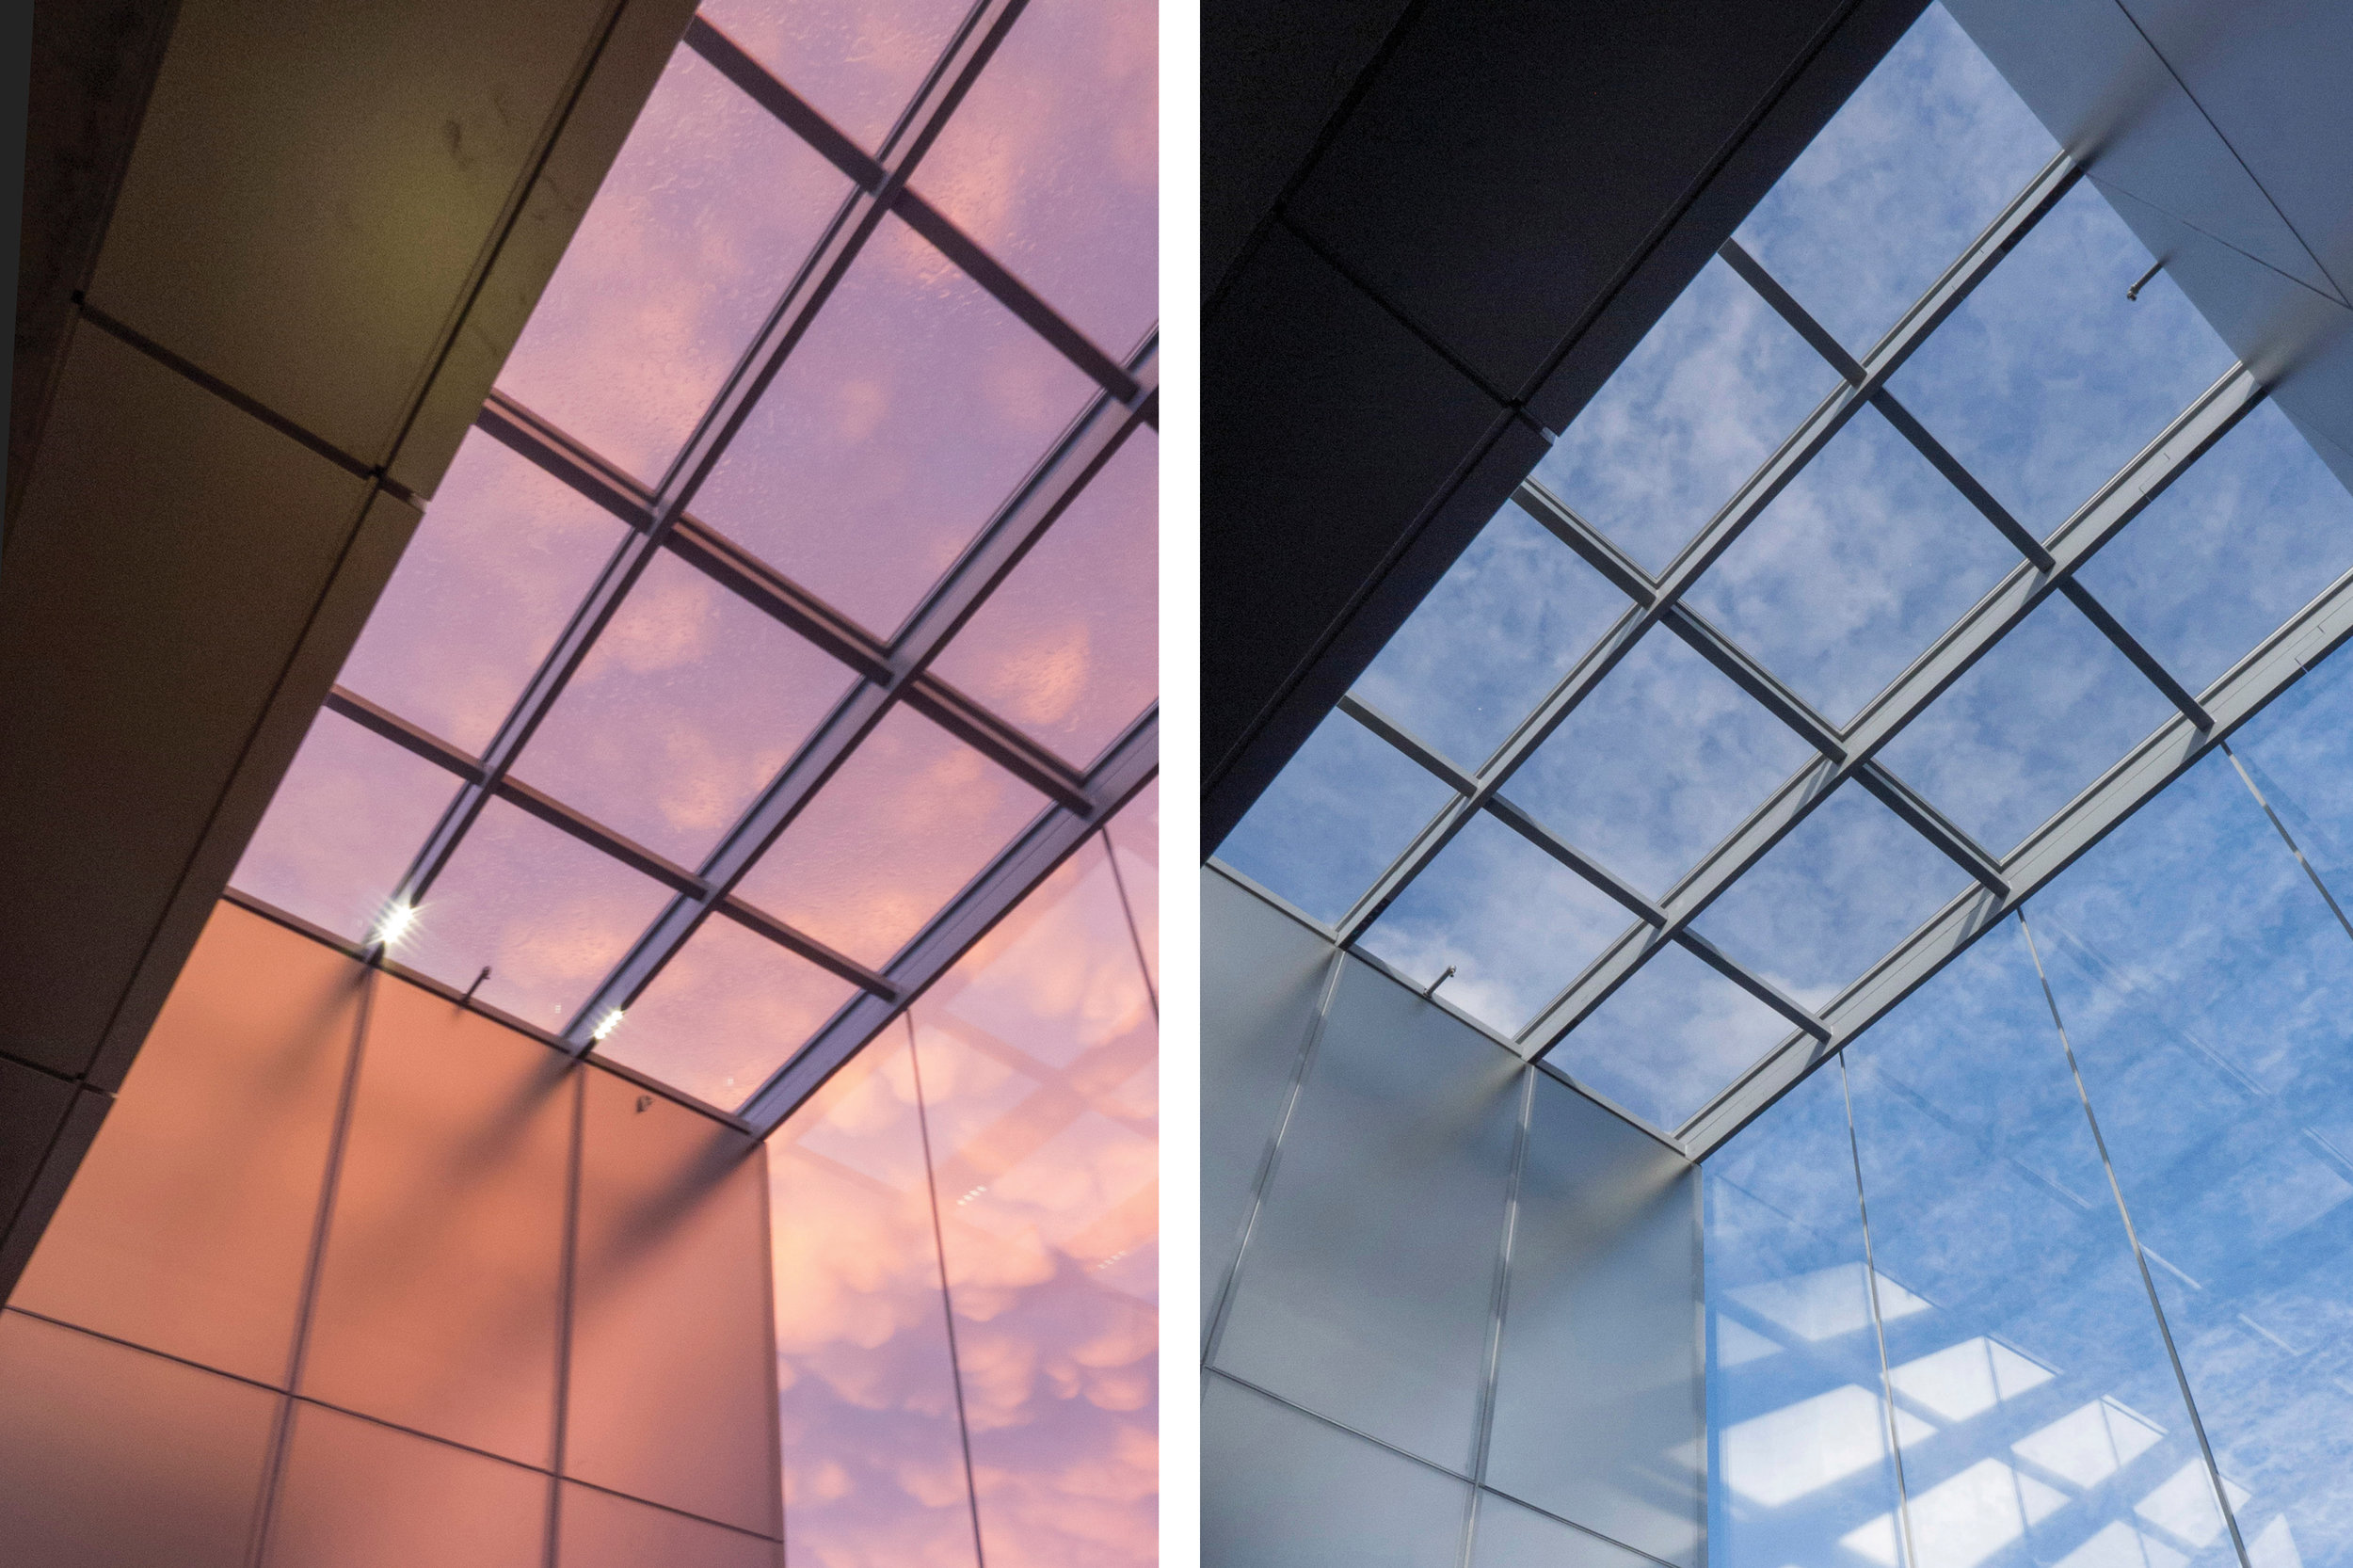 DIFFUSED SIDE WALLS RESPOND TO CHANGING SKY AND CONDITIONS